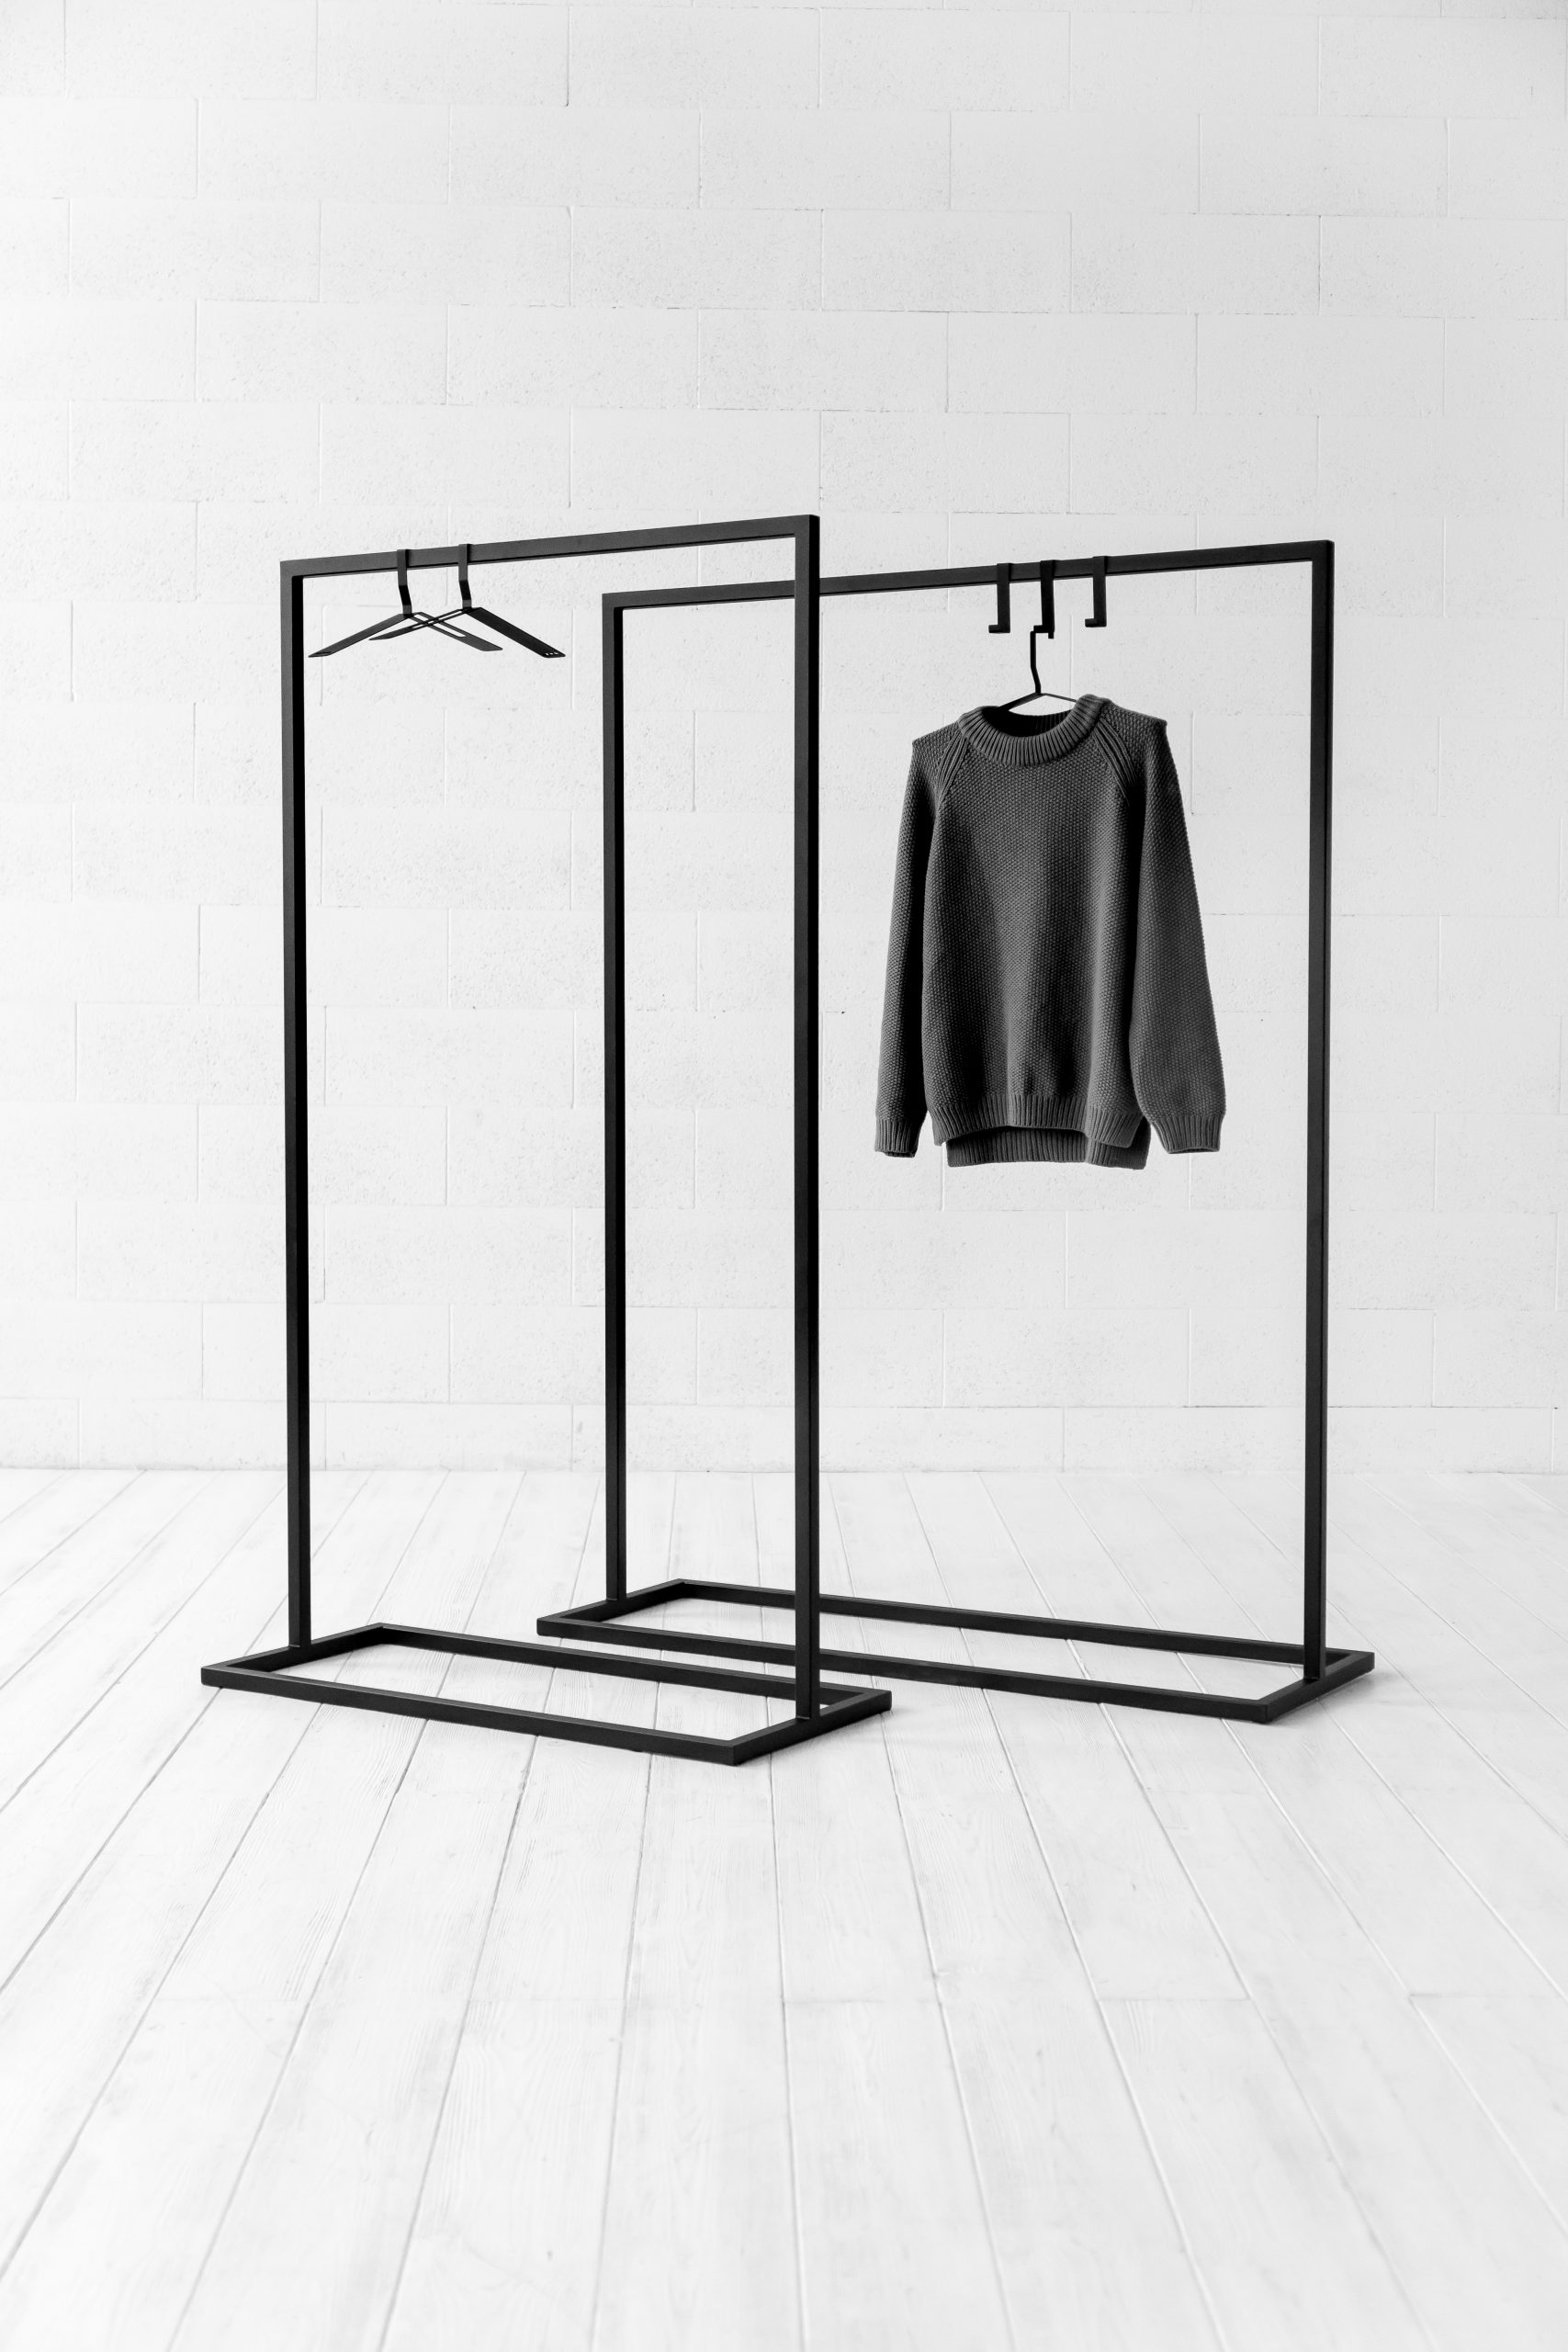 USUAL clothing rack